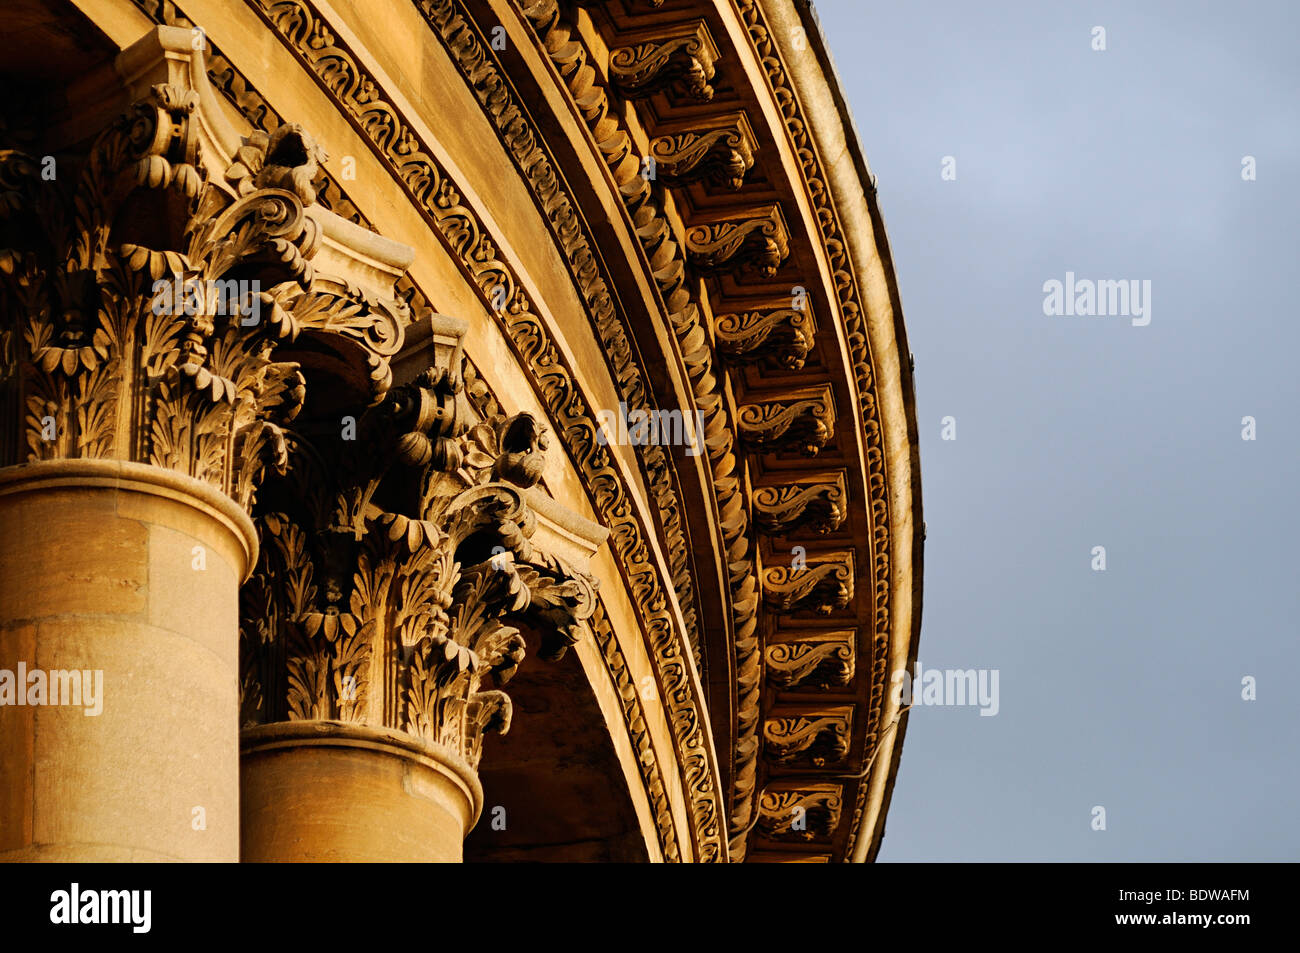 Columns and Ornate Stone Masonry on the Exterior of the Radcliffe Camera, Oxford, Oxfordshire, United Kingdom. - Stock Image